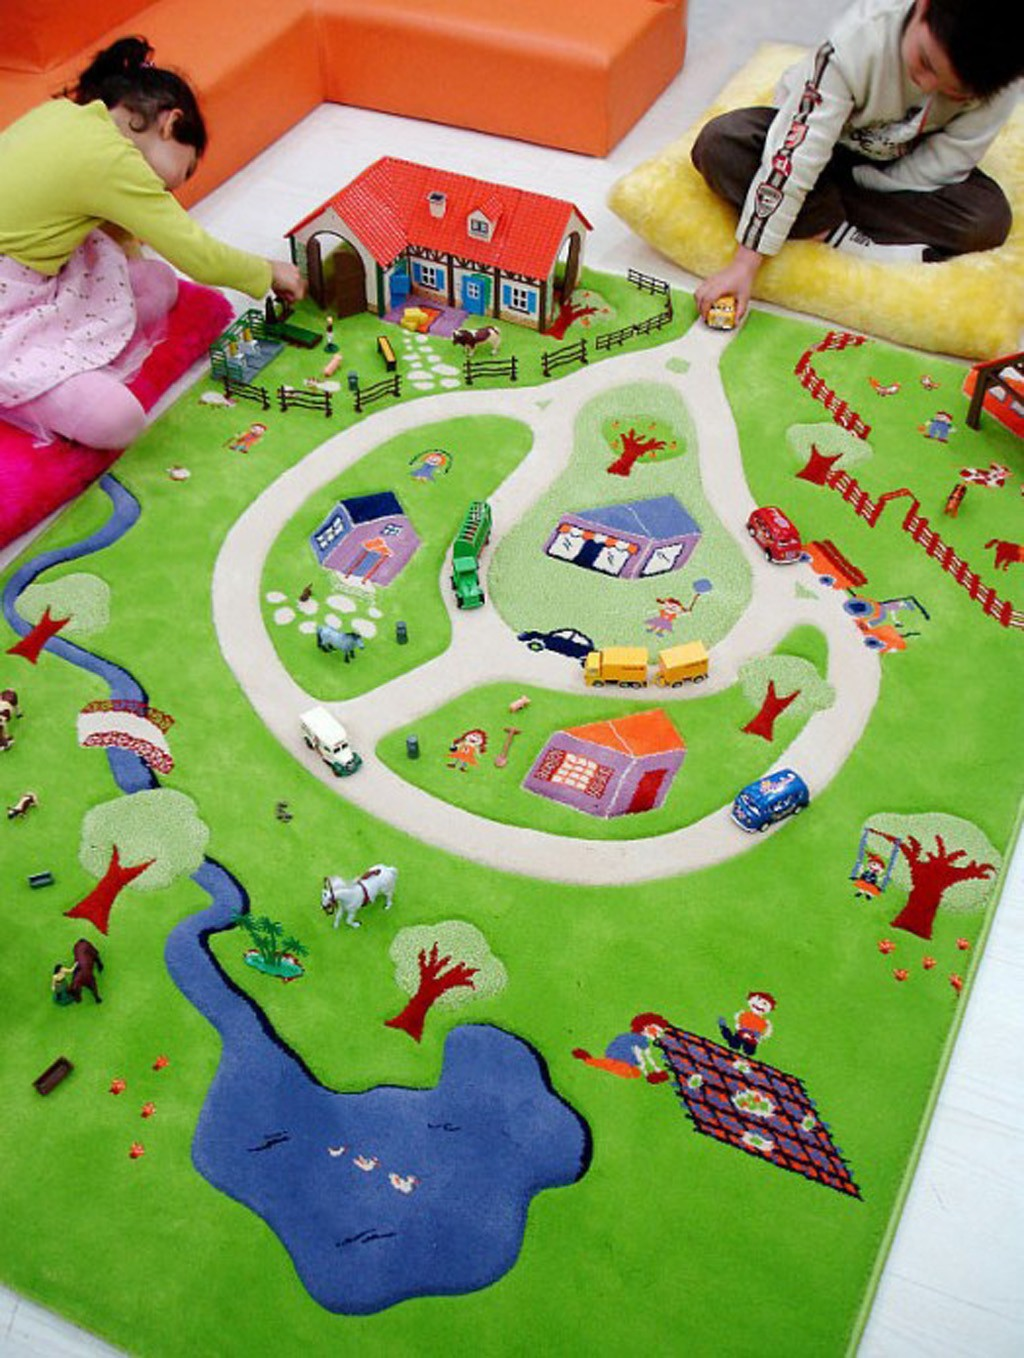 kids area rugs children area rug kids room area rugs really cute kids area rug design RLPYEQW